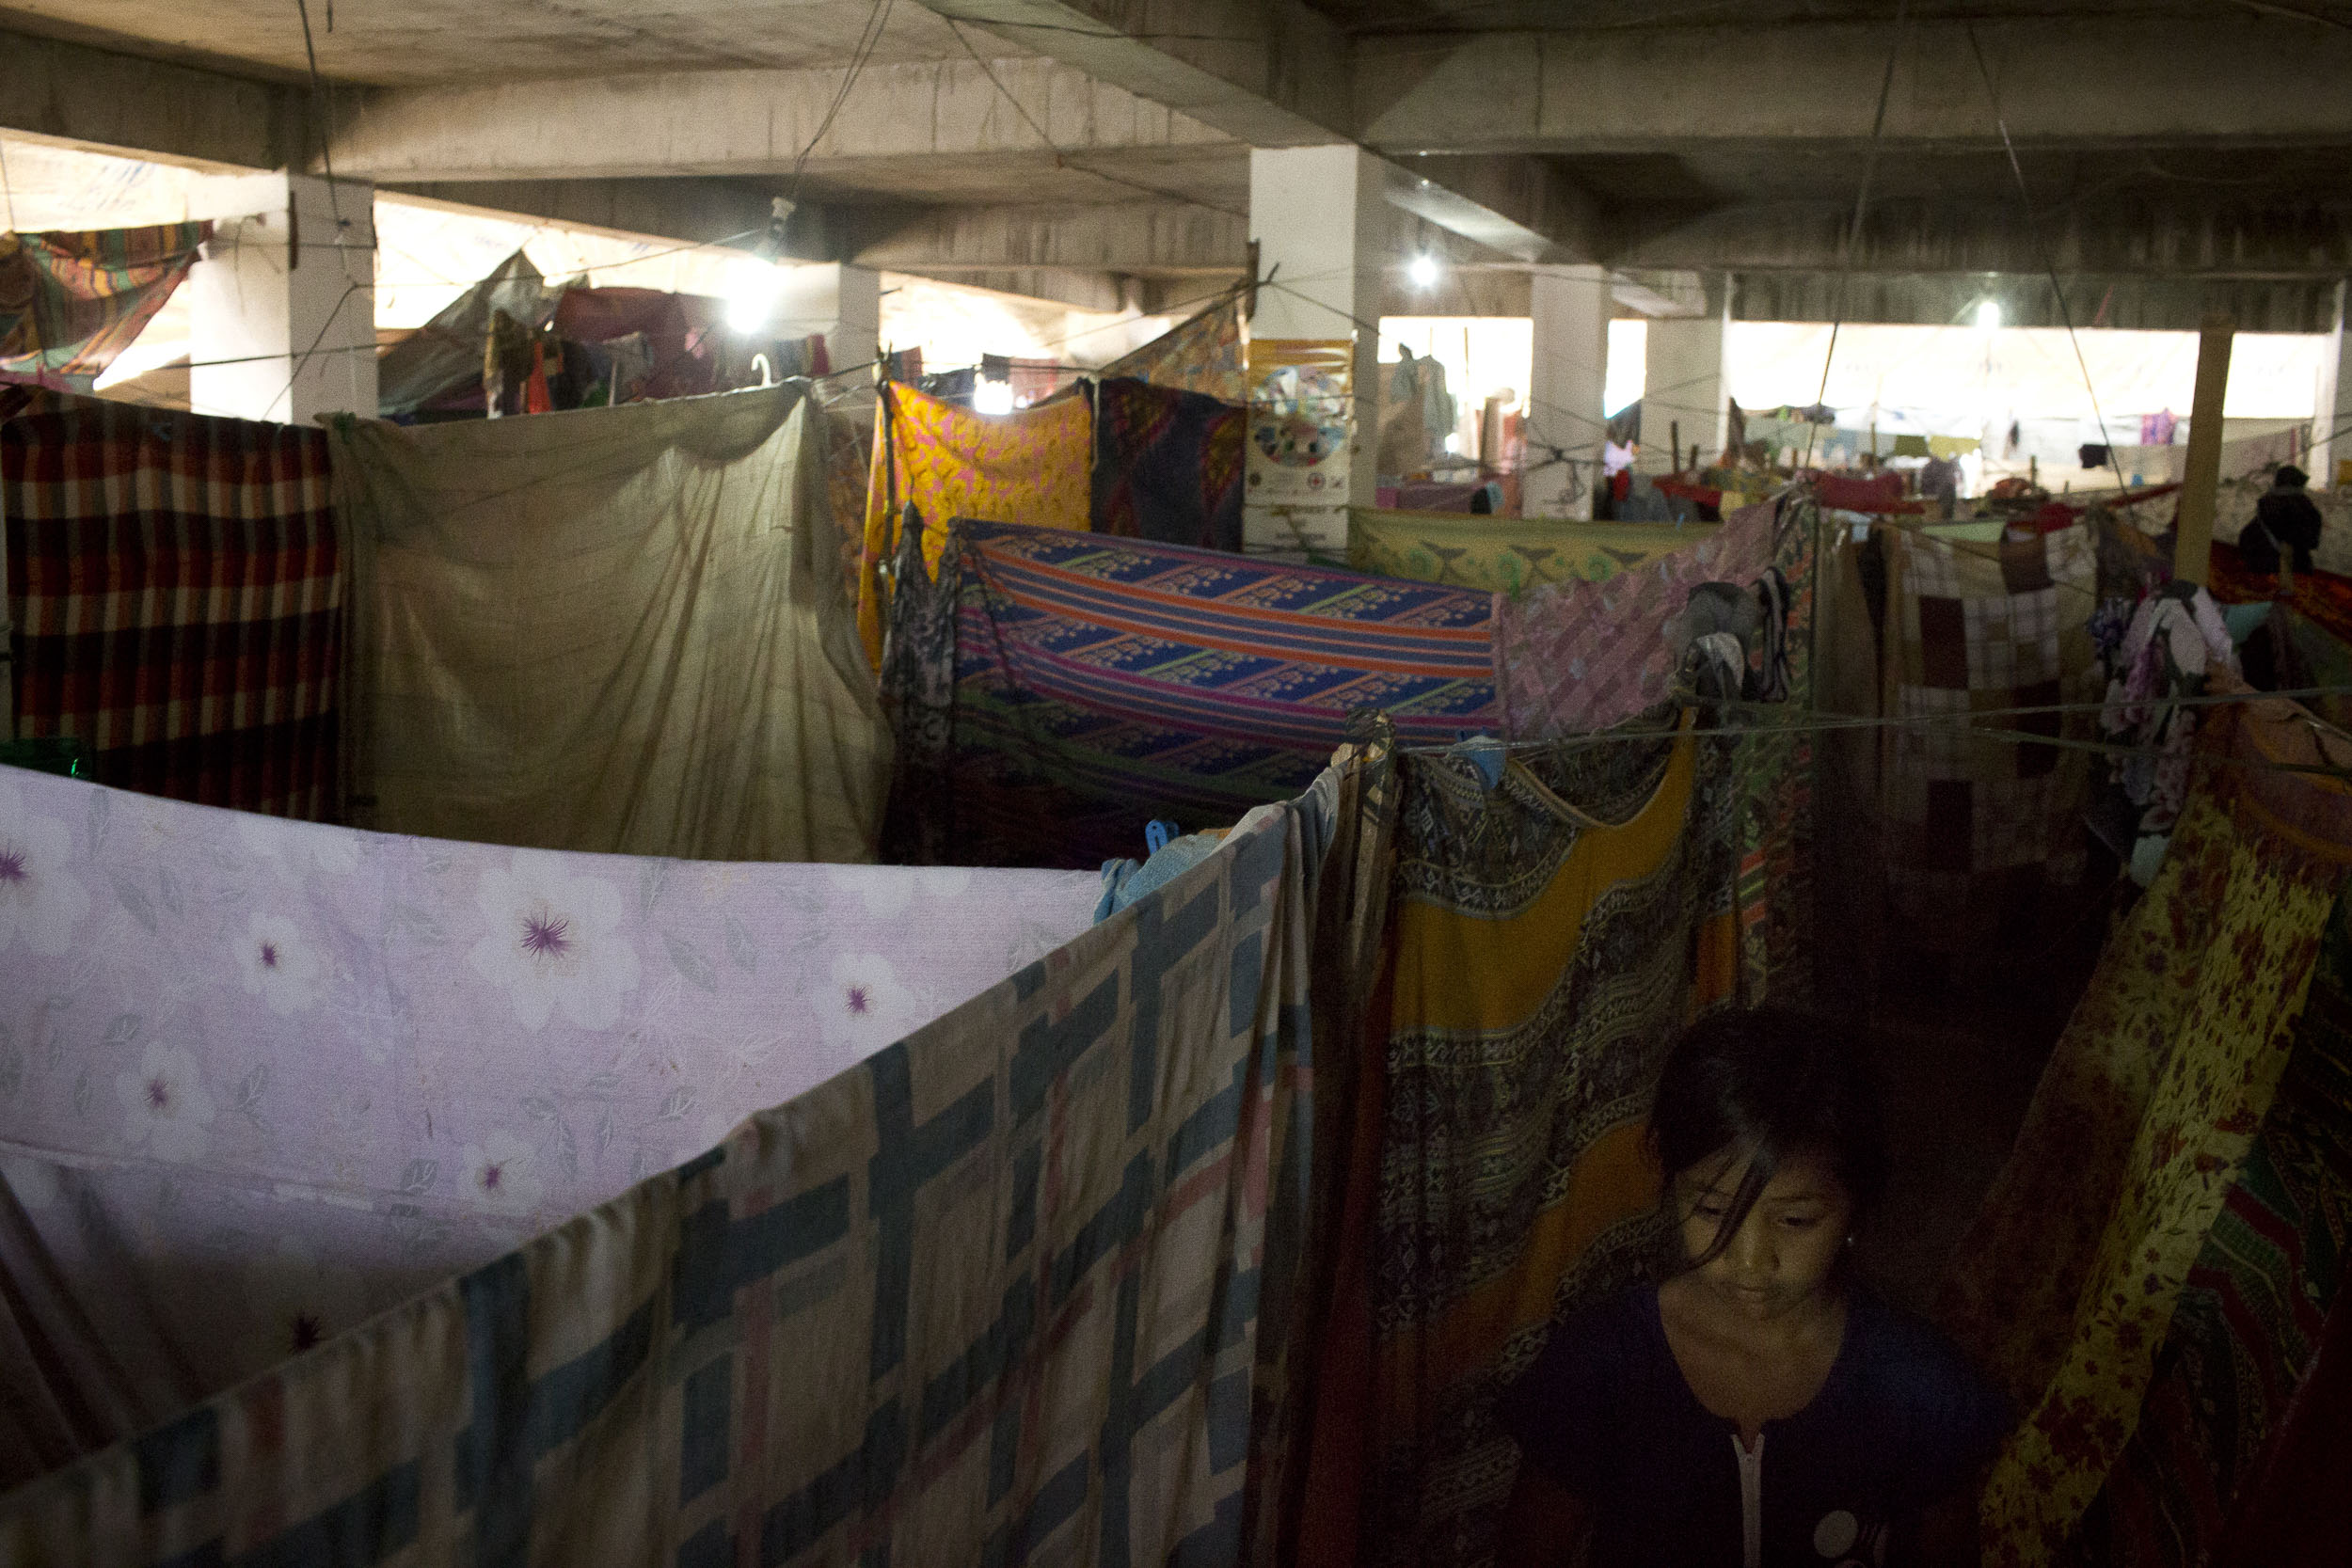 The Saguiran Evacuation Centre for I.D.P.'s (Internally Displaced Peoples) left homeless by the fighting in Marawi. 87 families have taken up residence in what was a community market approximately the size of a basketball court.